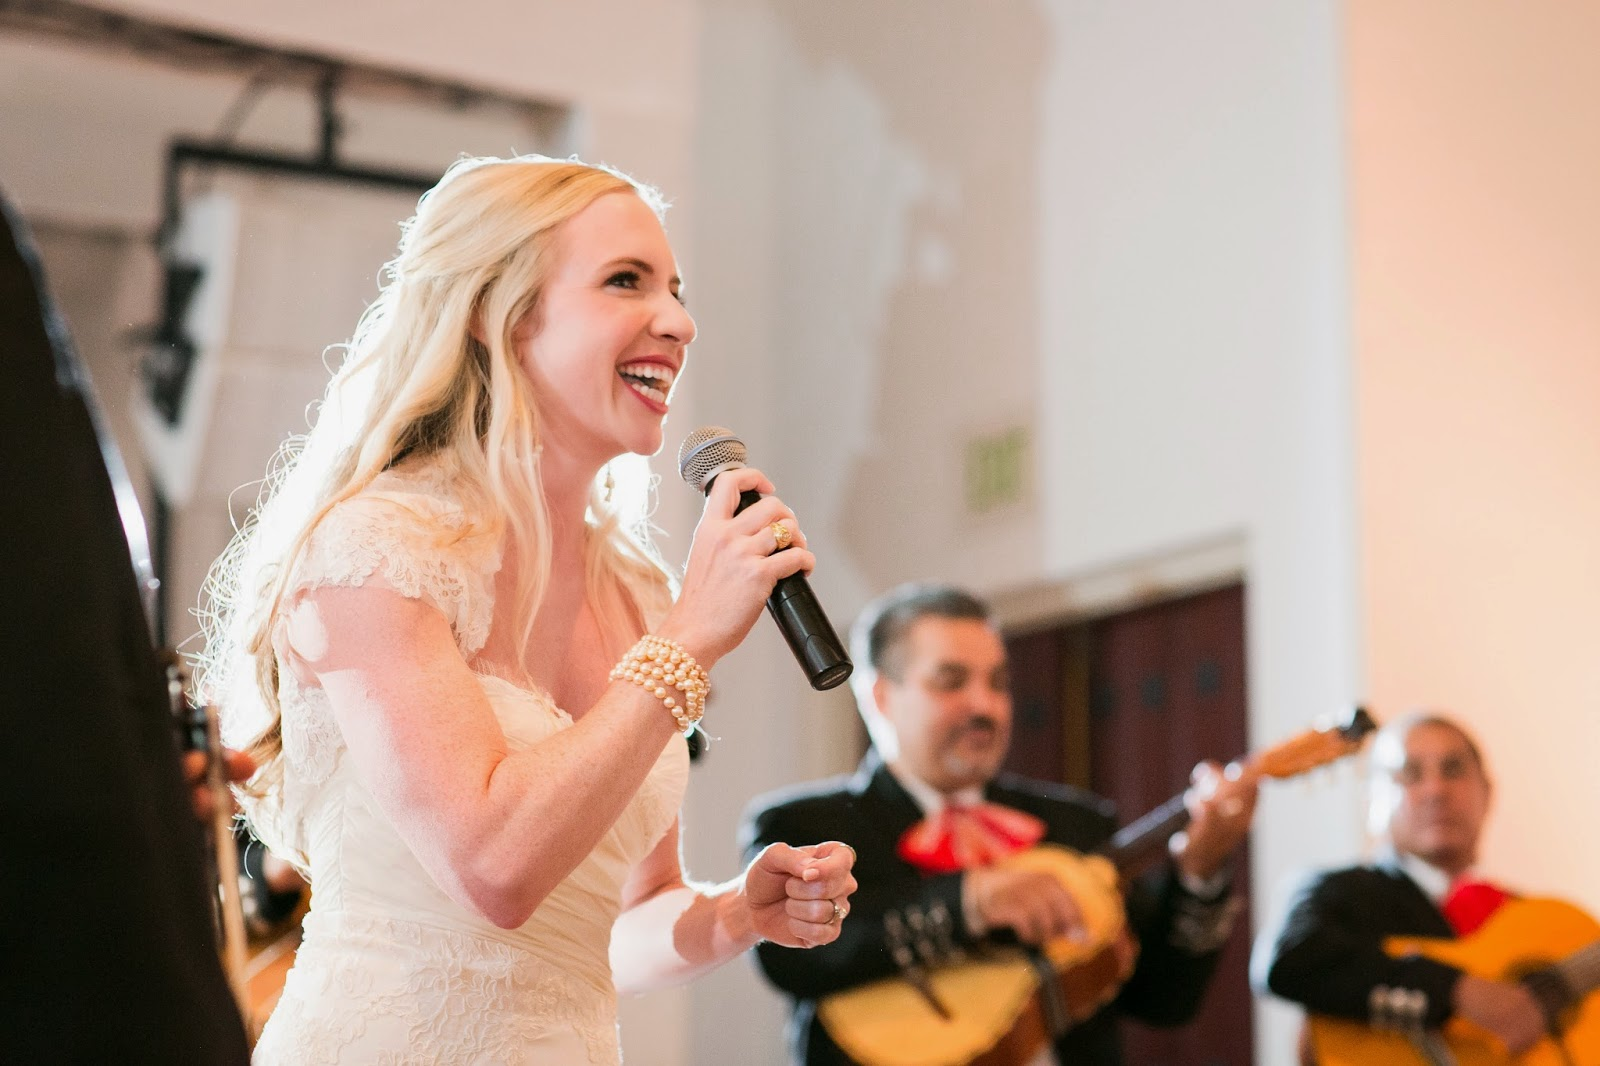 Olivia Margaux: Wedding Day: Kicking Off The Reception With A Song